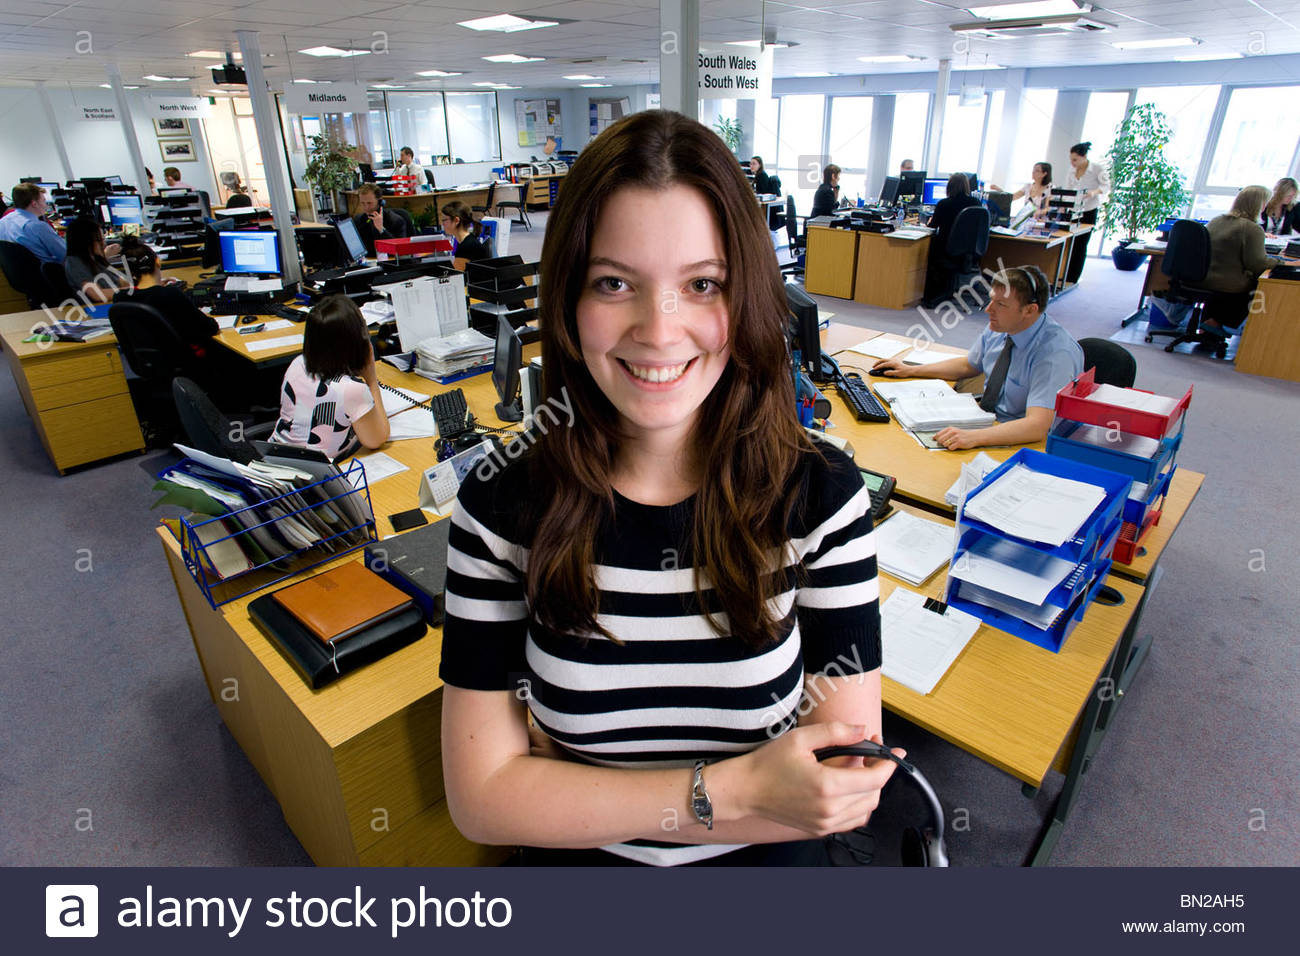 Smiling saleswoman in call center office - Stock Image